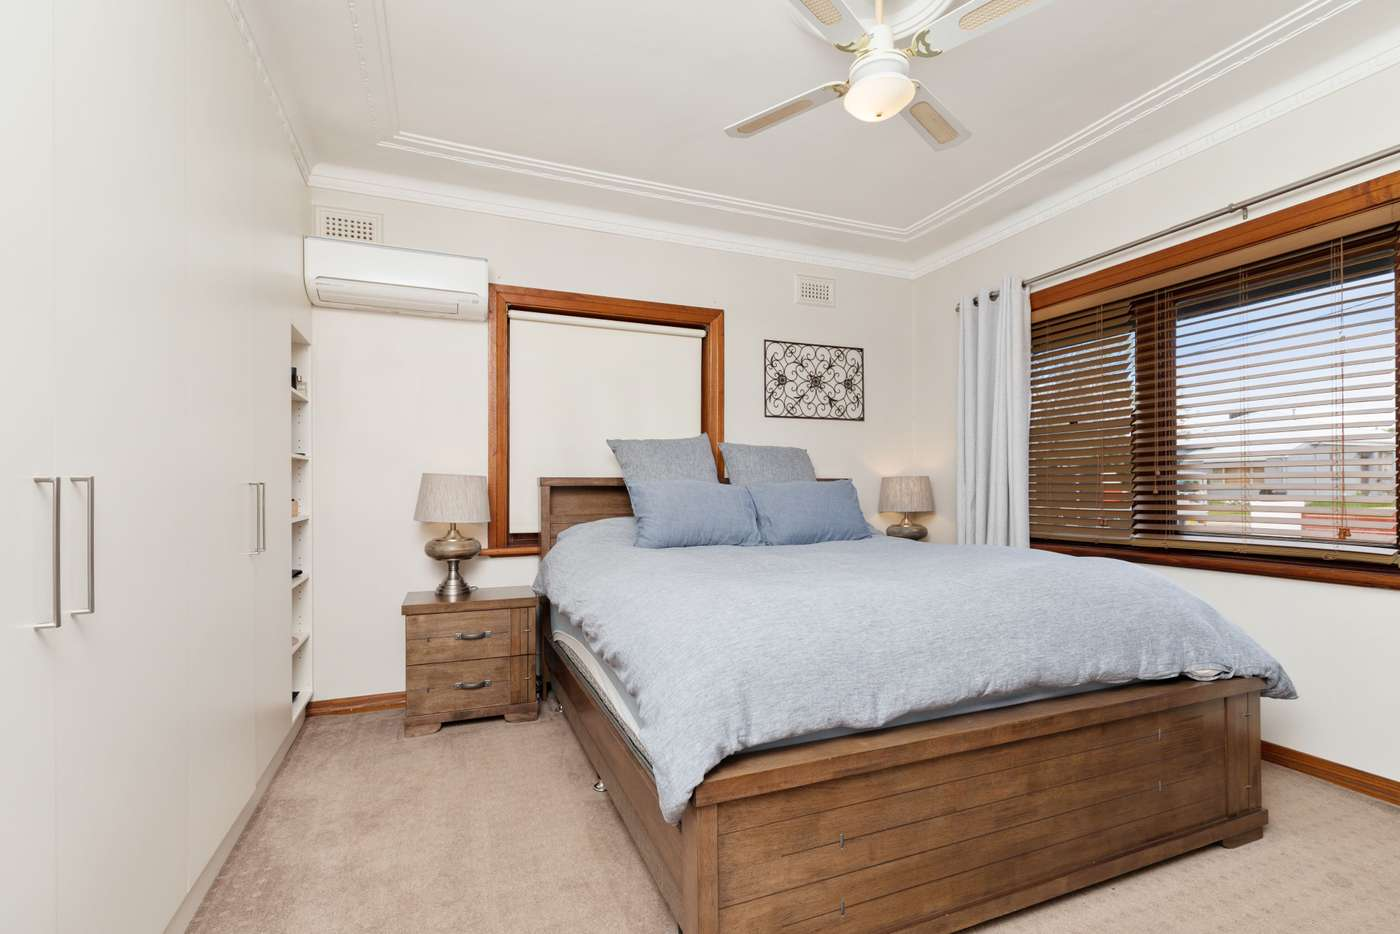 Sixth view of Homely house listing, 13 Sullivan Avenue, Wagga Wagga NSW 2650